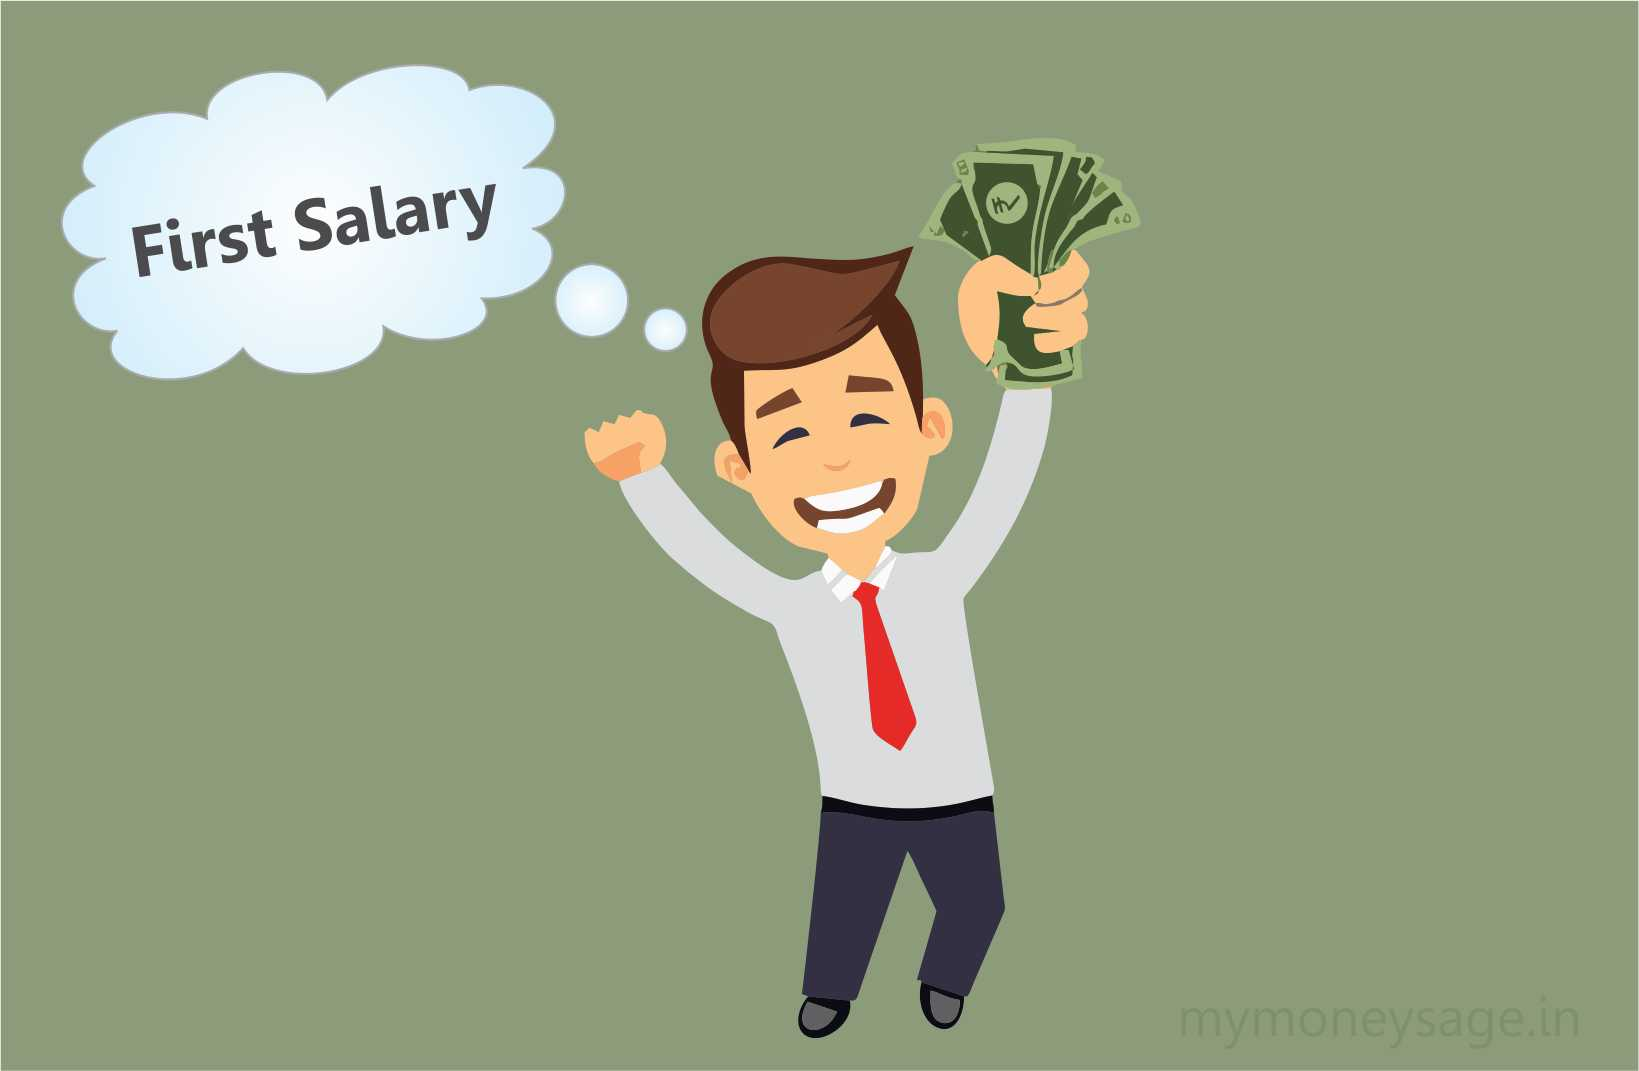 9 Things to Do When You Get your First Salary